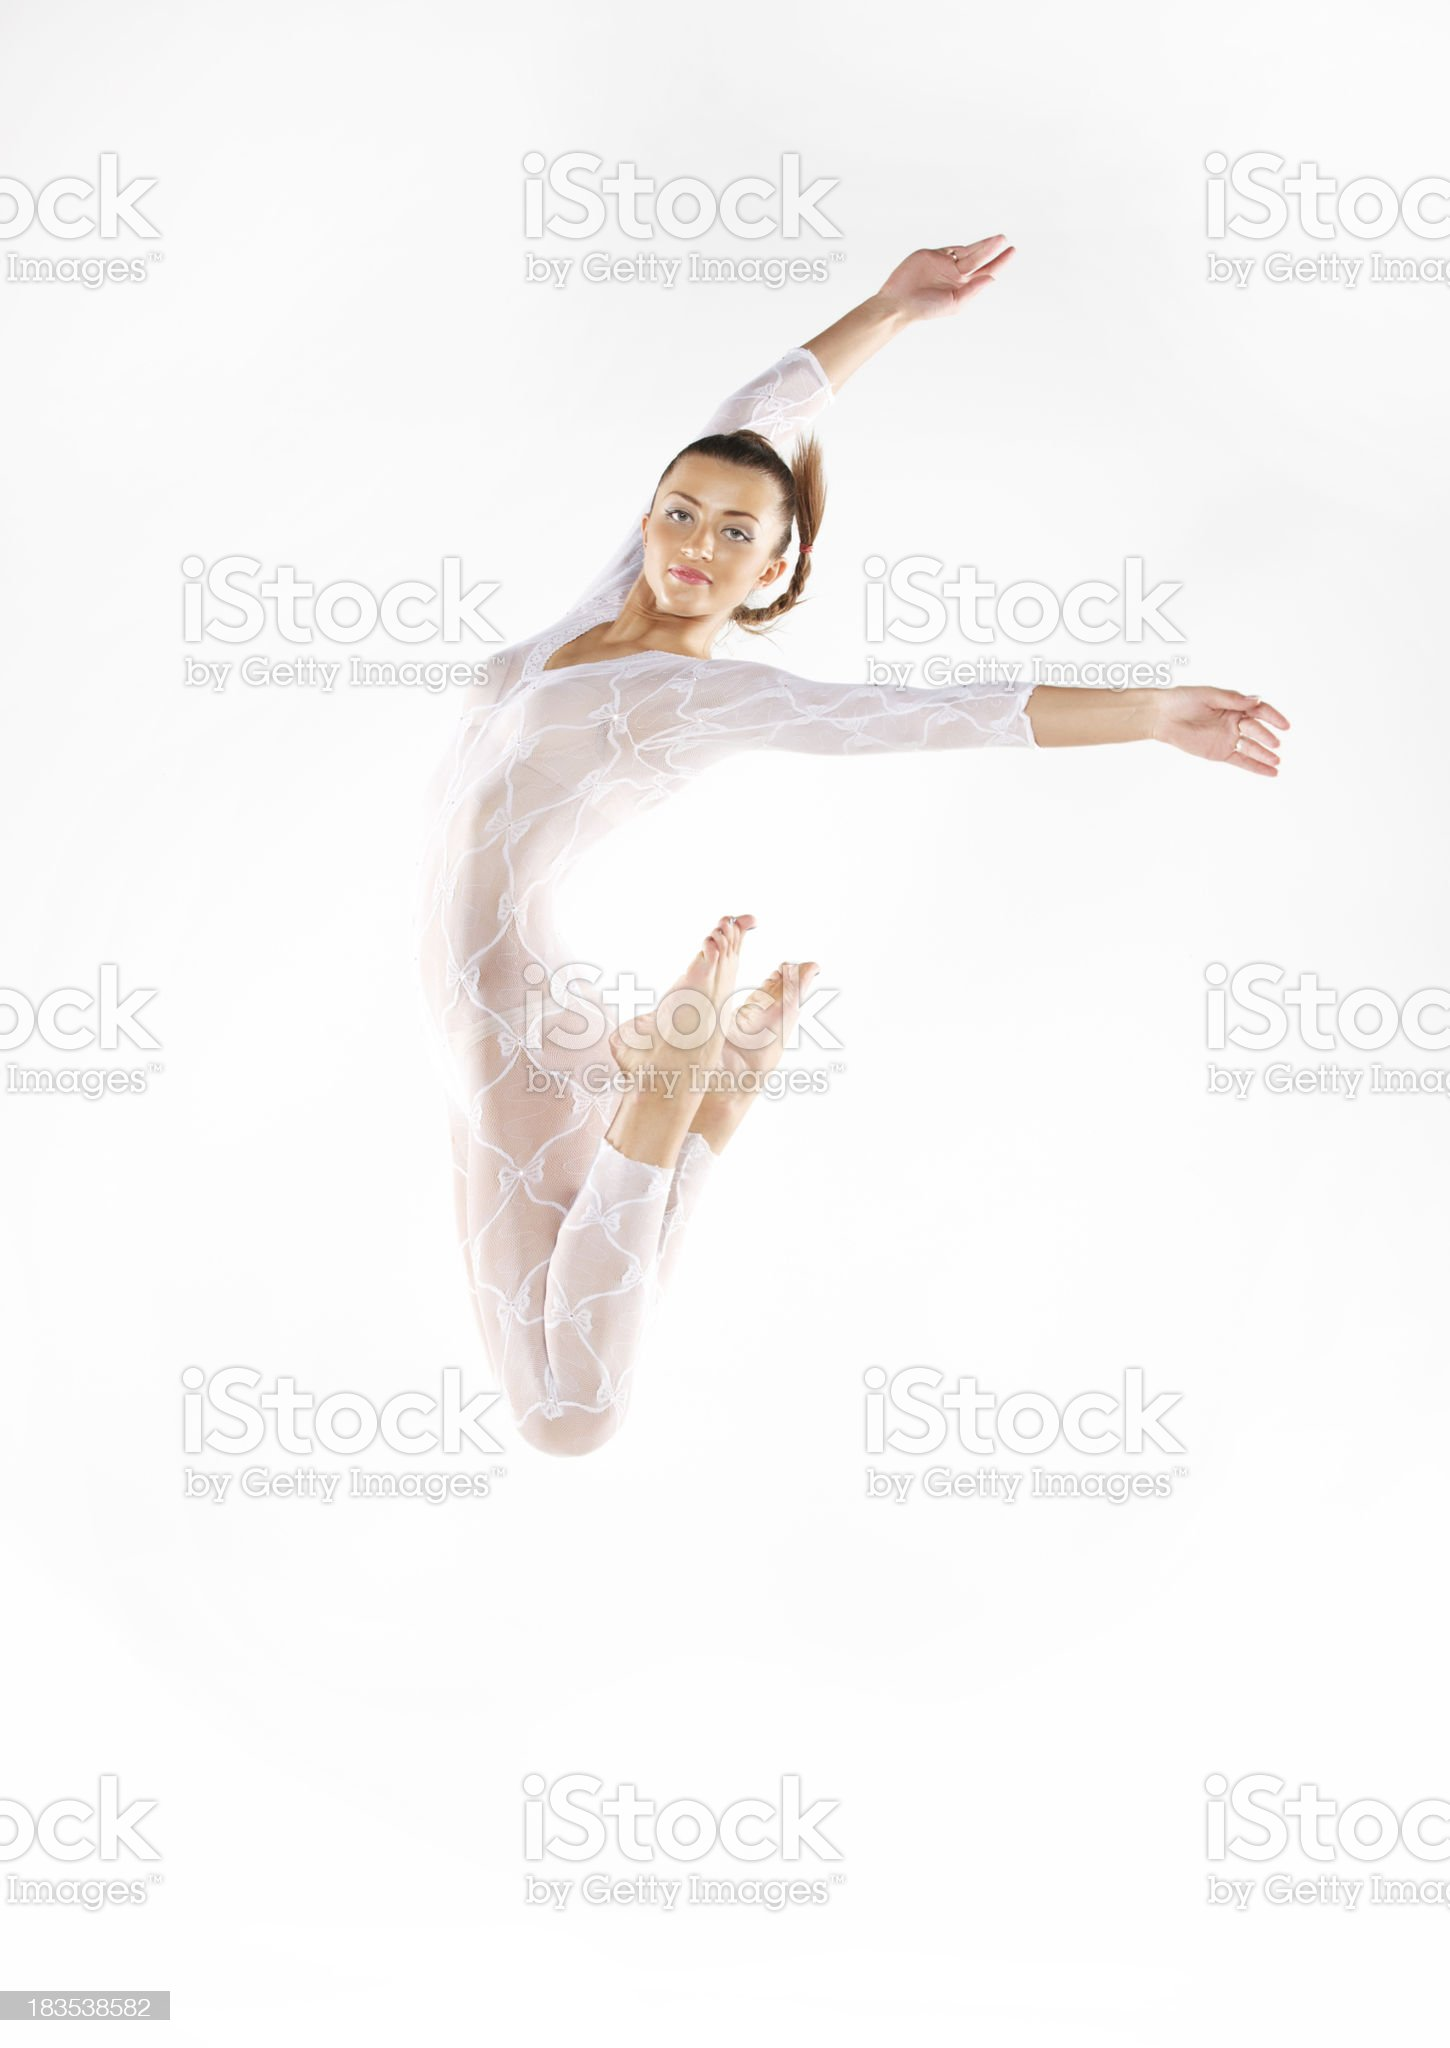 young beauty dancer. royalty-free stock photo